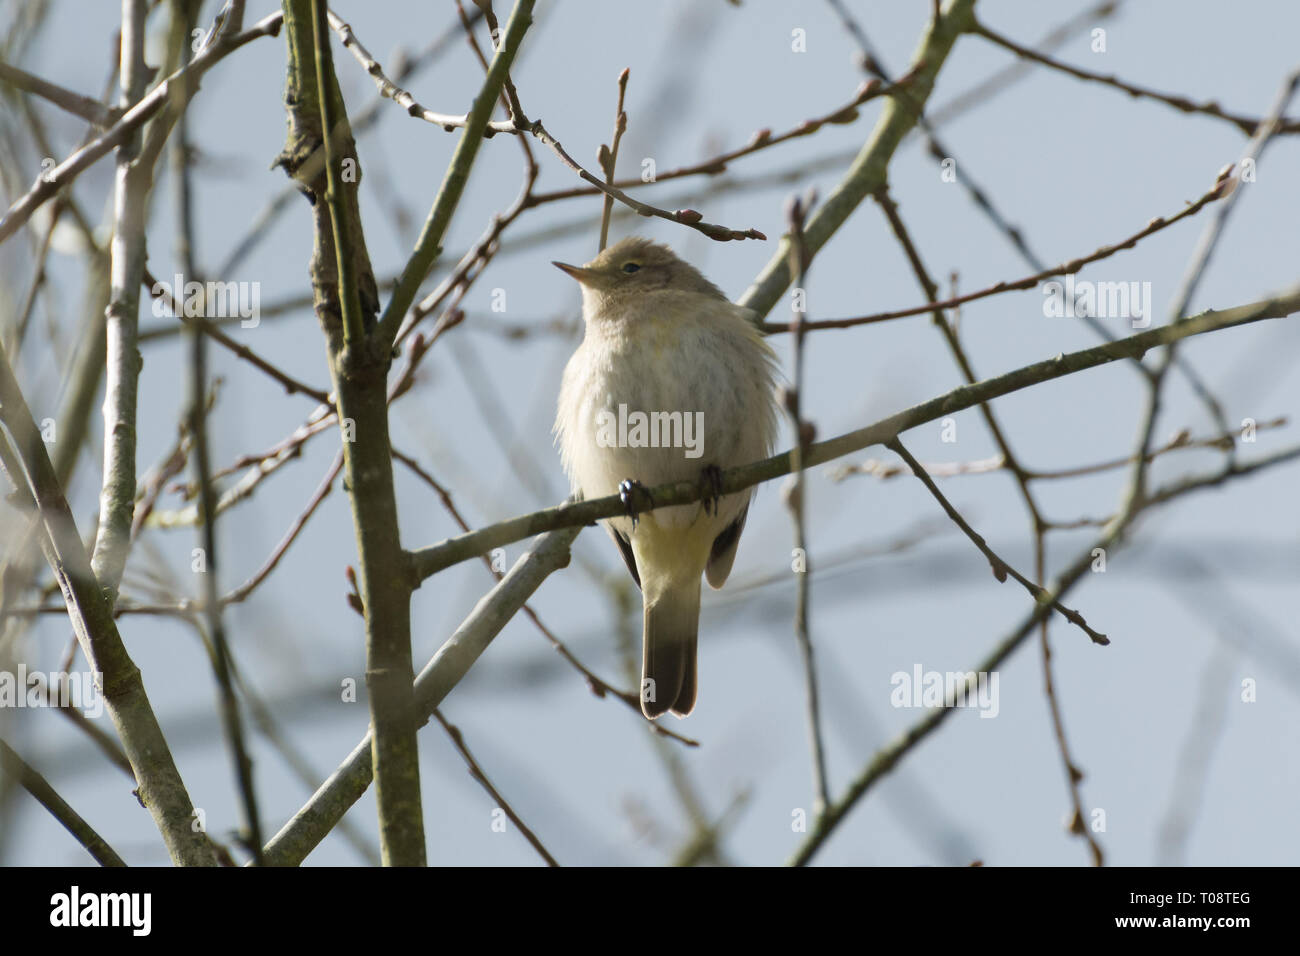 A common chiffchaff (Phylloscopus collybita) bird in a tree during March. Chiffchaffs are migratory warblers, and come to the UK in spring to breed. - Stock Image